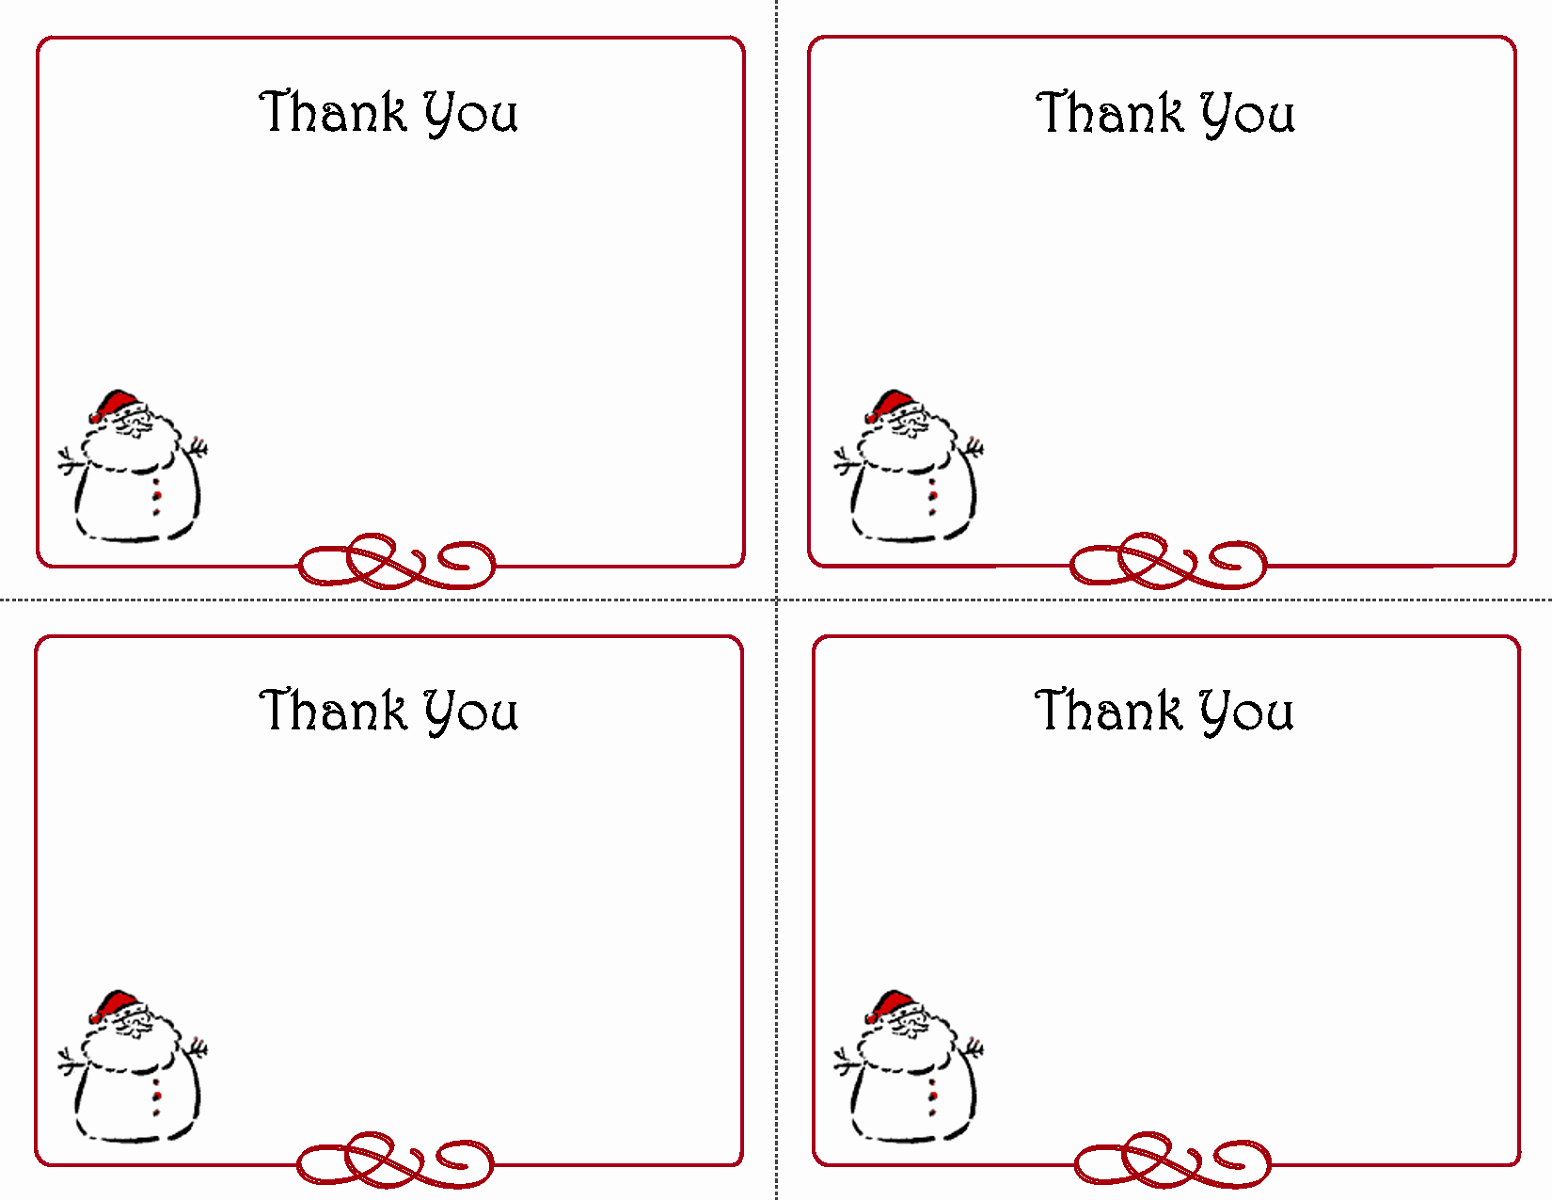 Thank You Note Cards Template Fresh Thank You Notes Templates